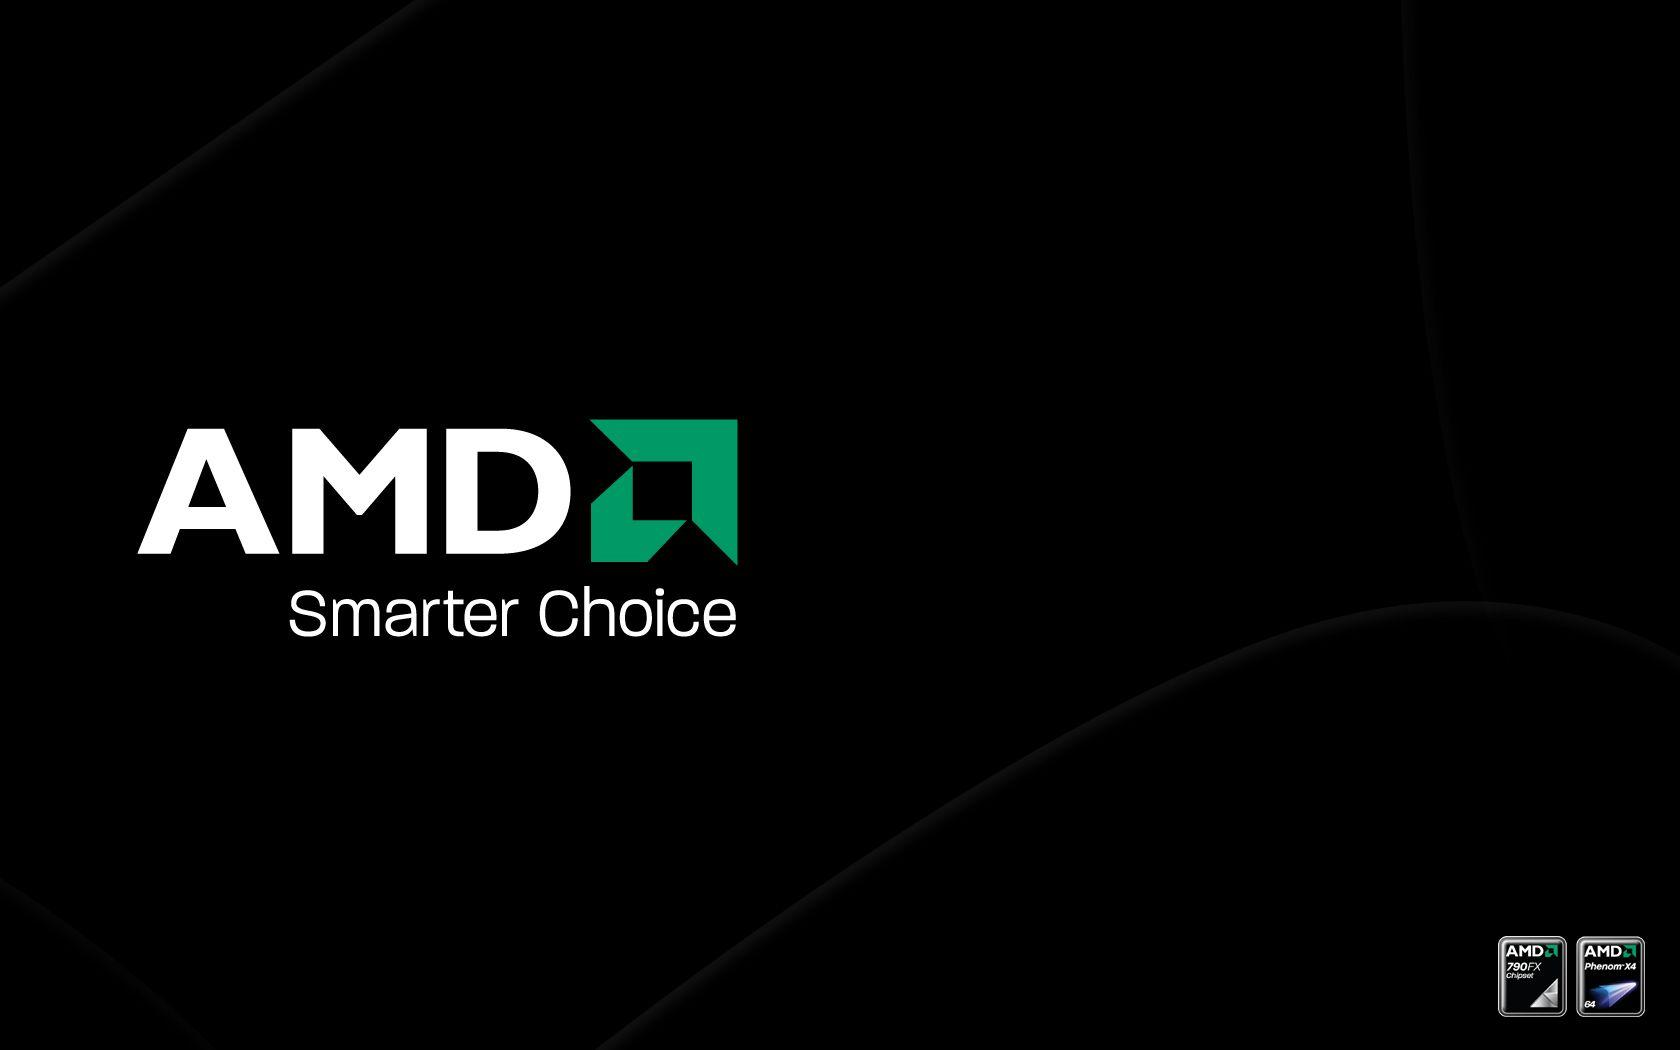 amd fx background by - photo #38